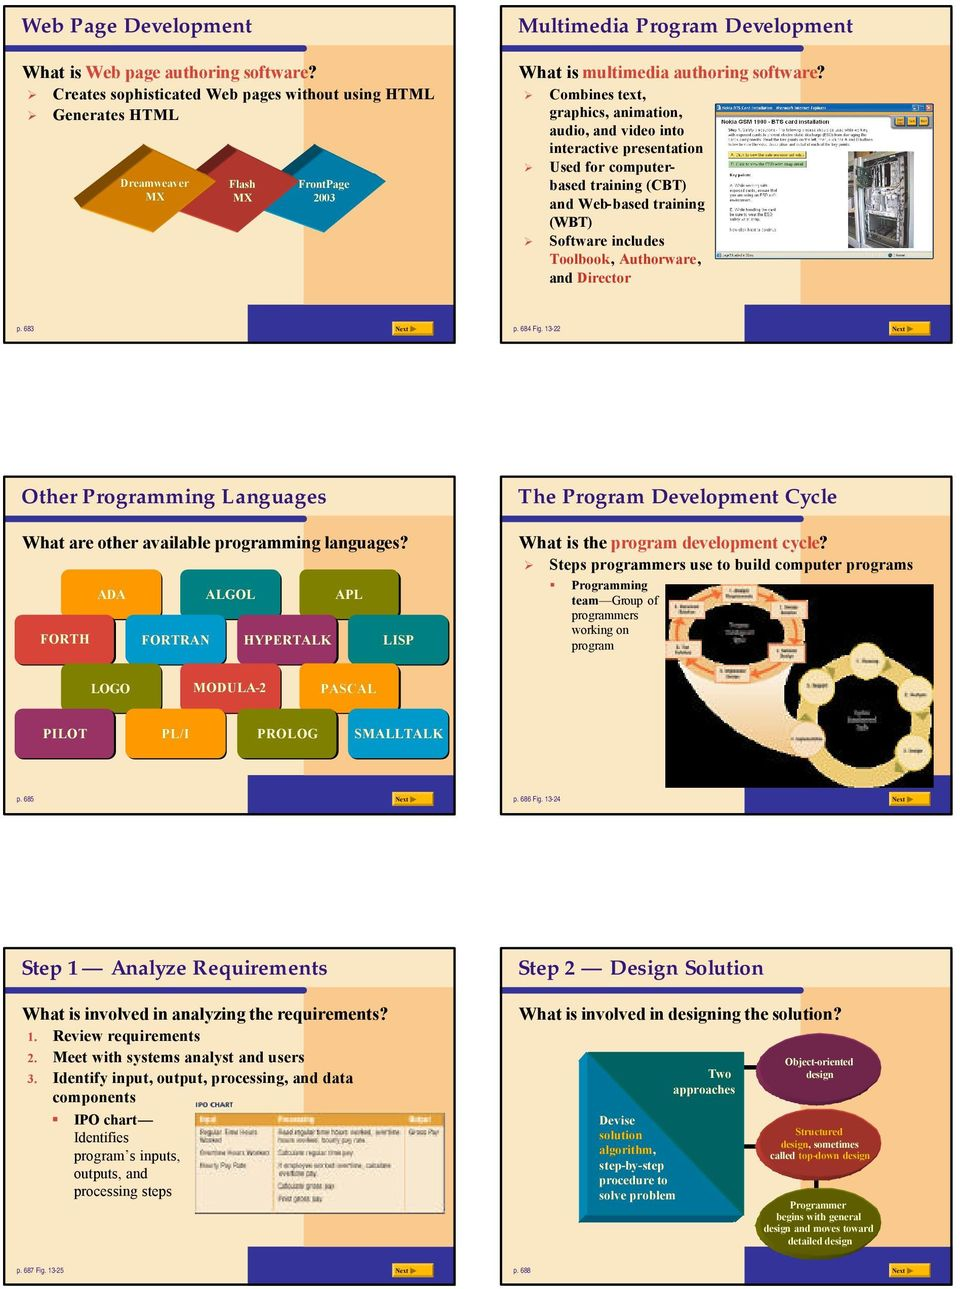 Combines text, graphics, animation, audio, and video into interactive presentation Used for computerbased training (CBT) and Web-based training (WBT) Software includes Toolbook, Authorware, and